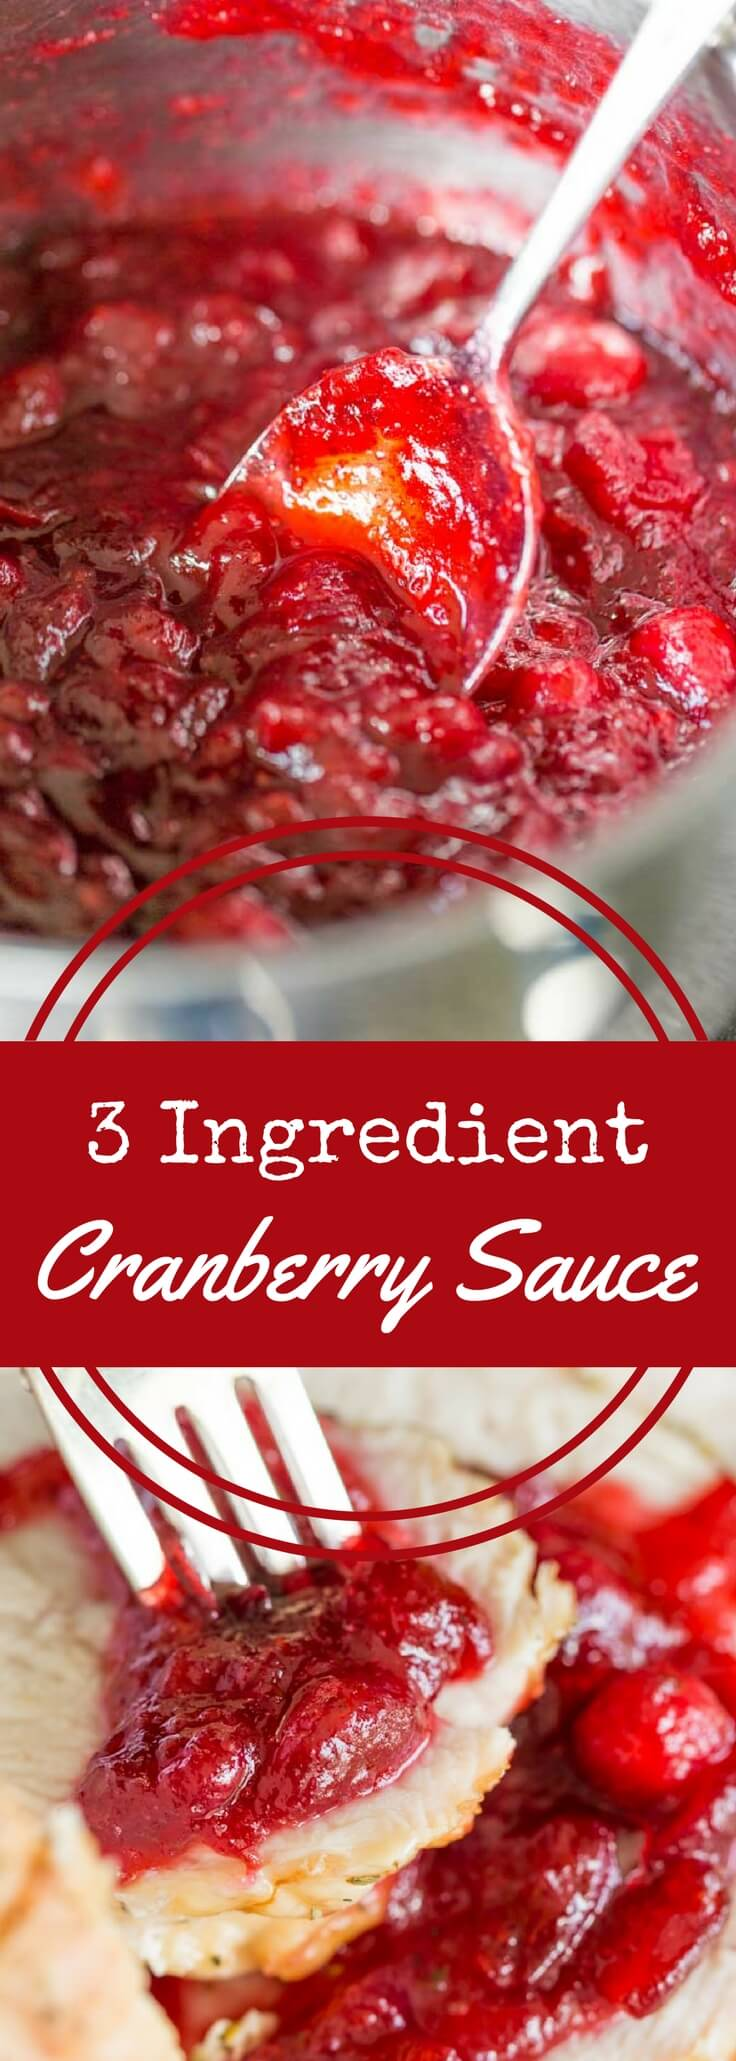 With just 3 ingredients and in less than 30 minutes, you can have homemade cranberry sauce! This Coca-Cola® cranberry sauce is perfect for the holidays.